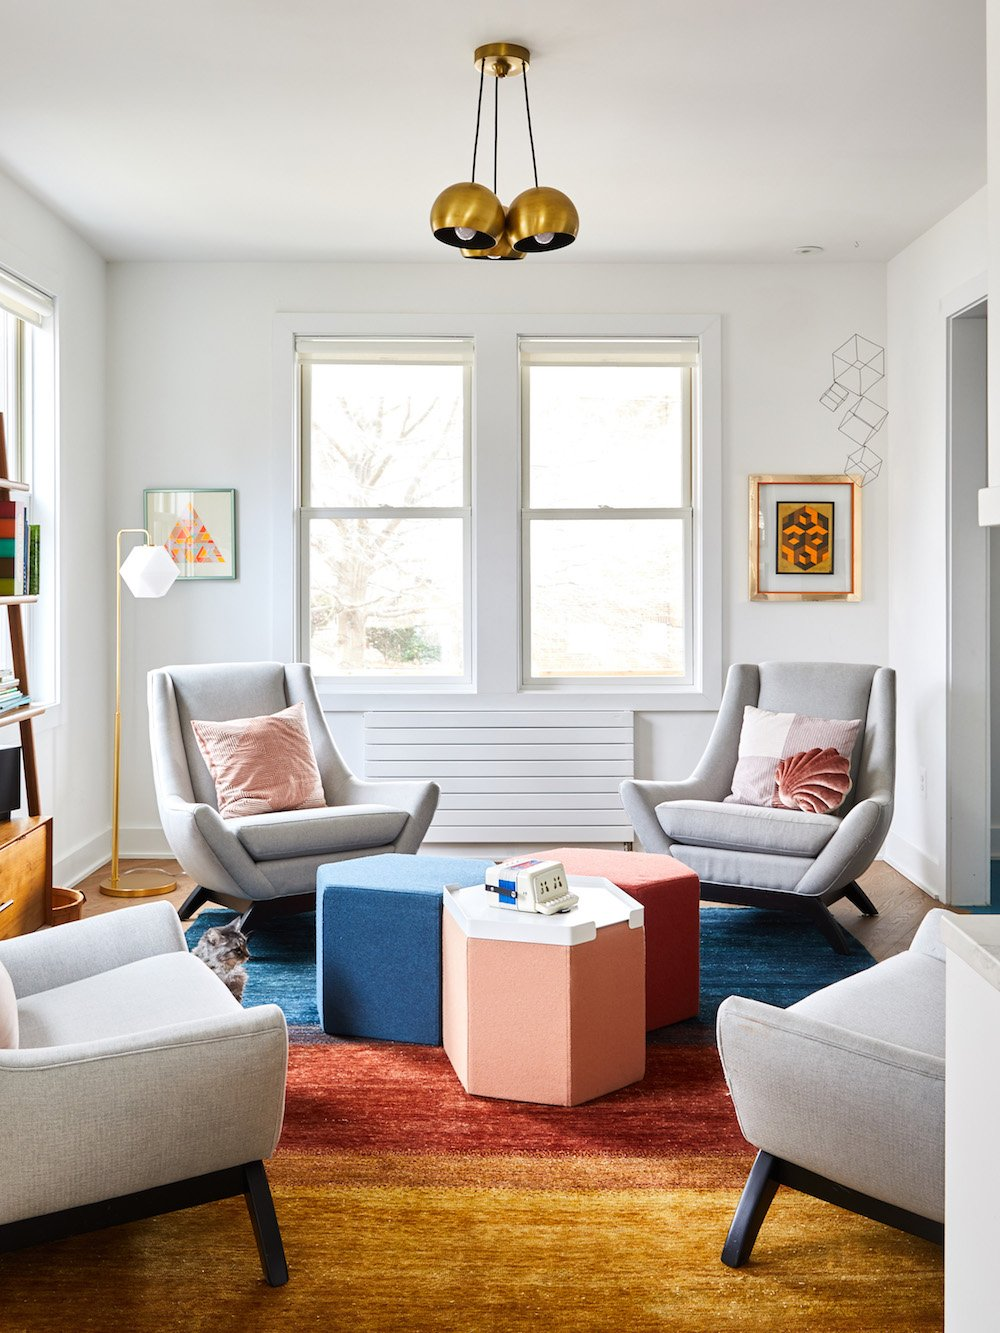 A Washington, D.C., Home Tour